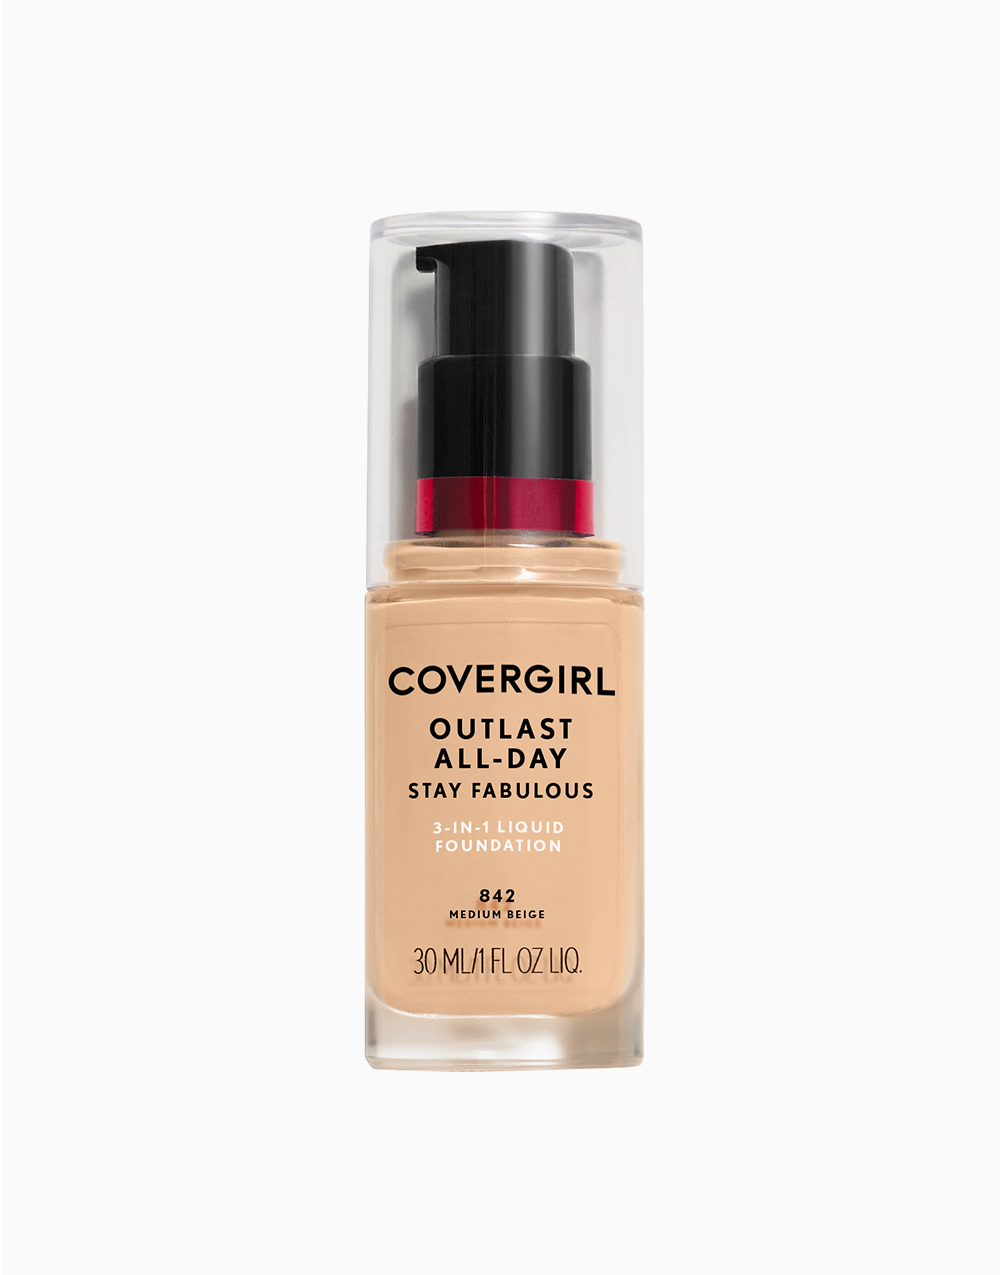 Outlast Stay Fabulous 3-in-1 Foundation by CoverGirl   Medium Beige